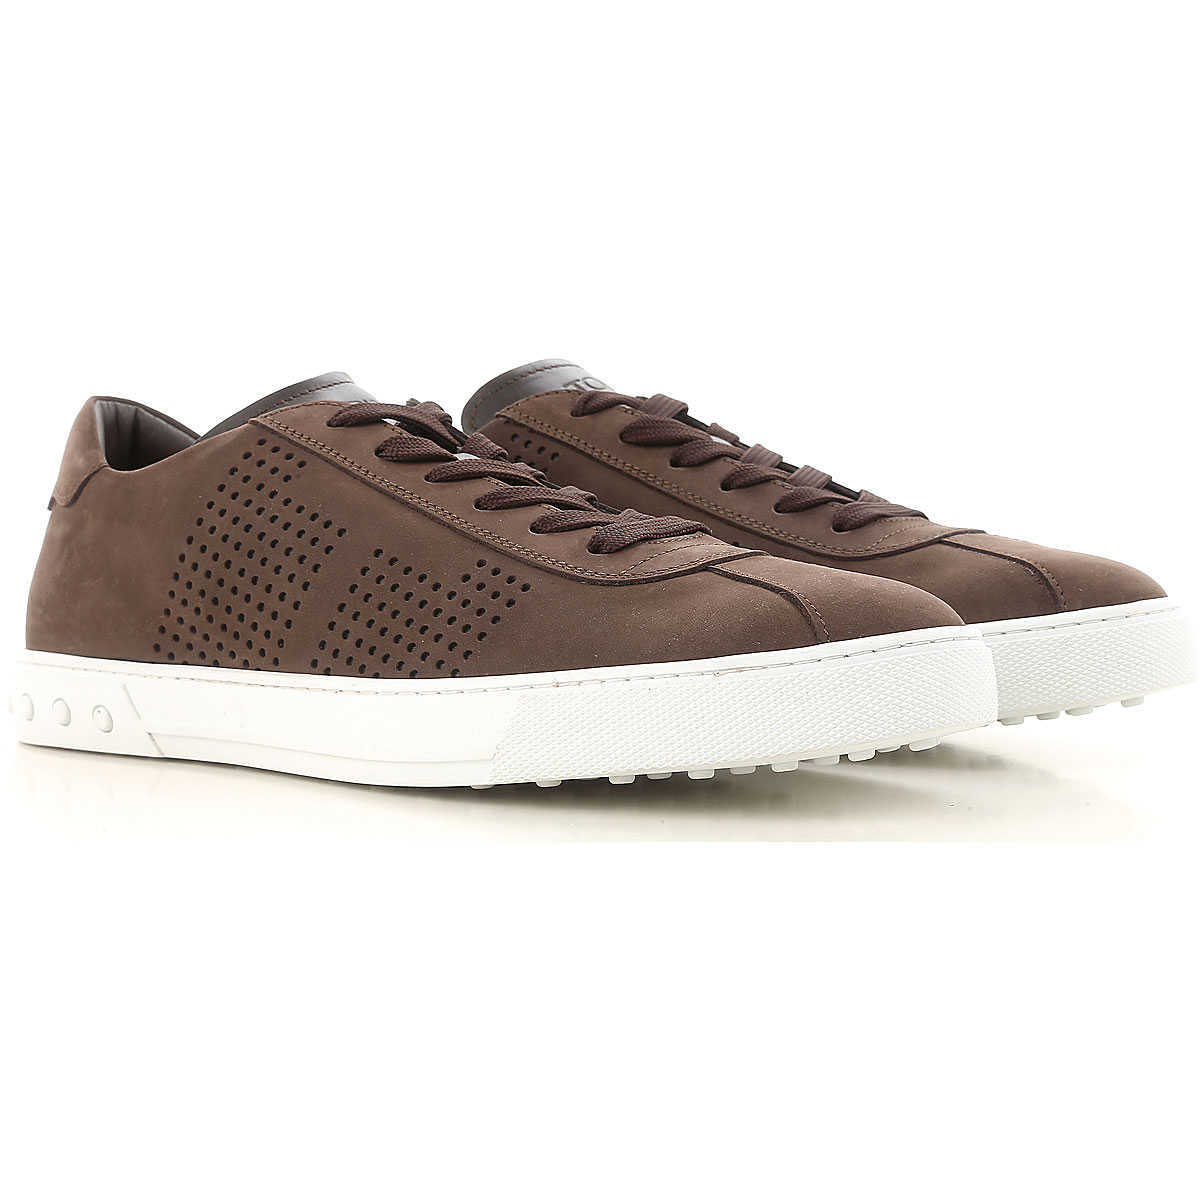 Tods Sneakers for Men On Sale Brown UK - GOOFASH